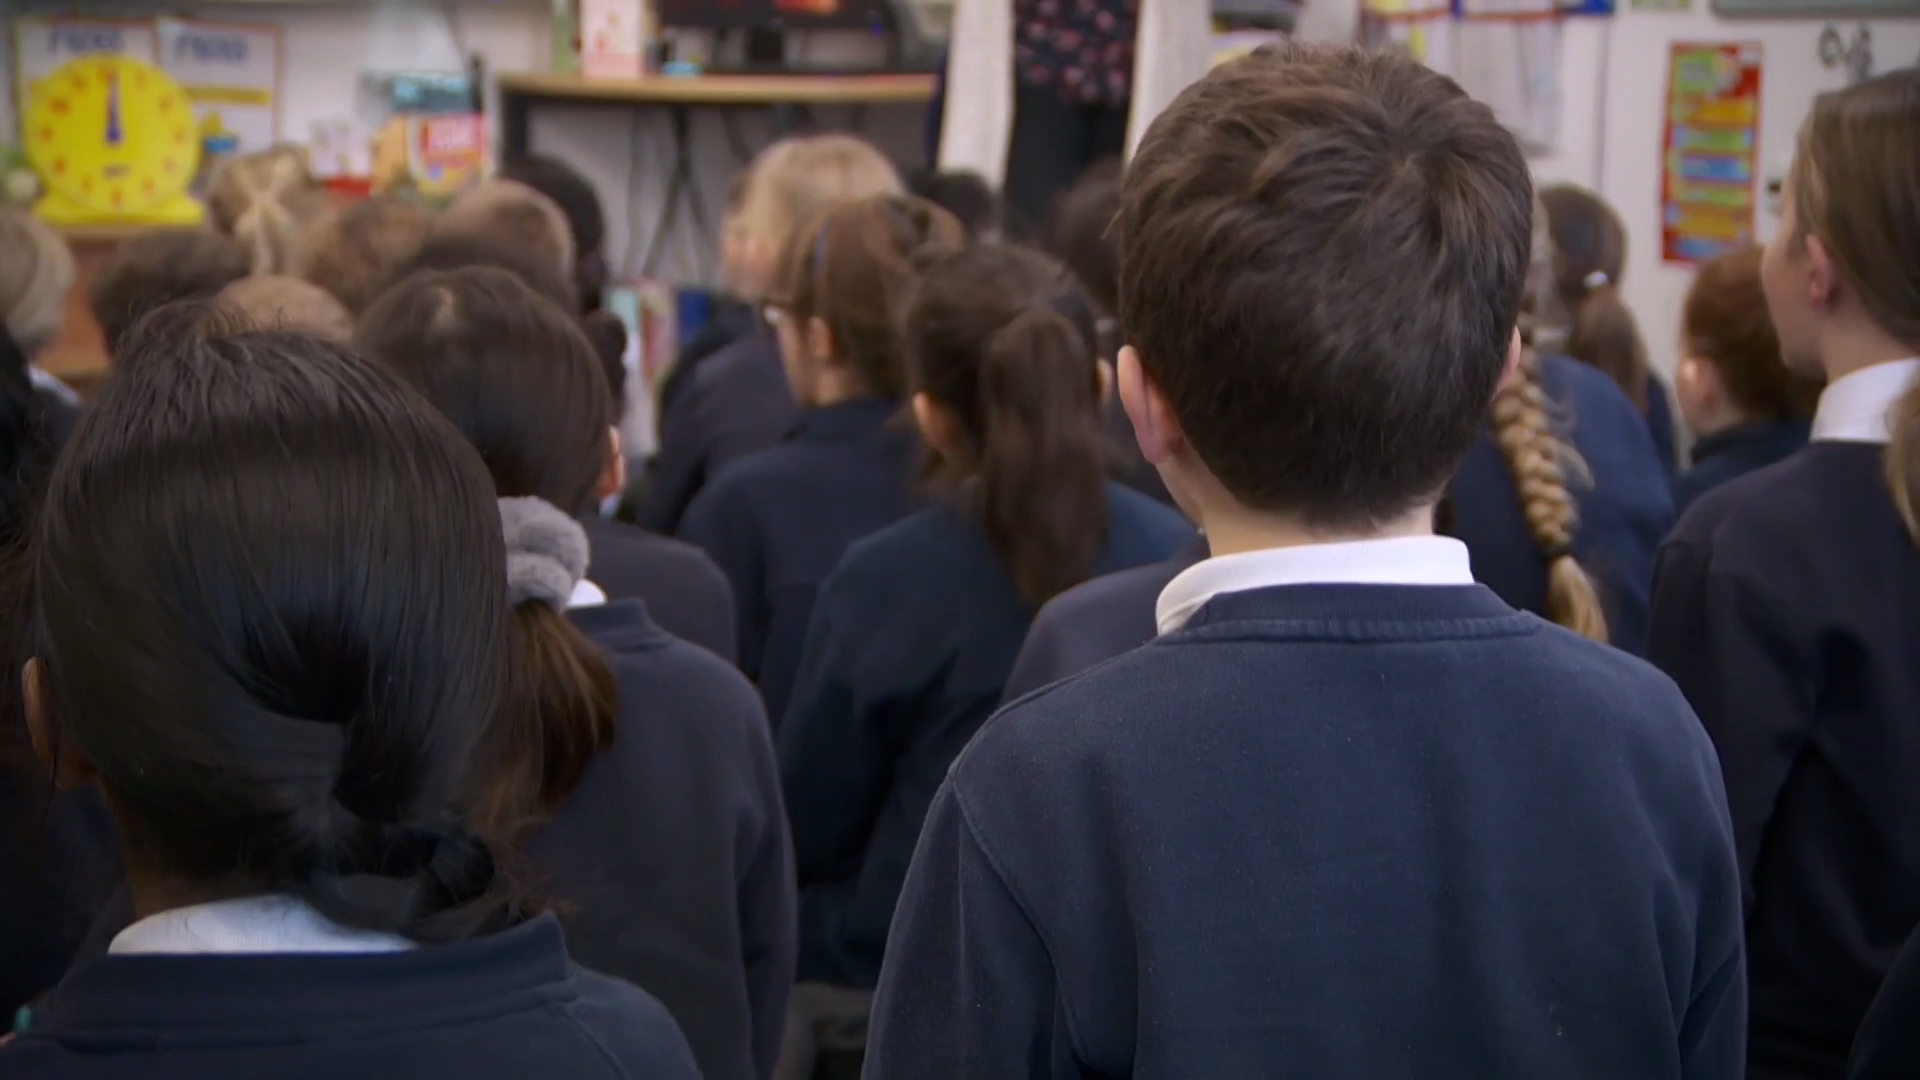 Disadvantaged pupils most likely to be affected by under-performing schools, says Ofsted - channel 4